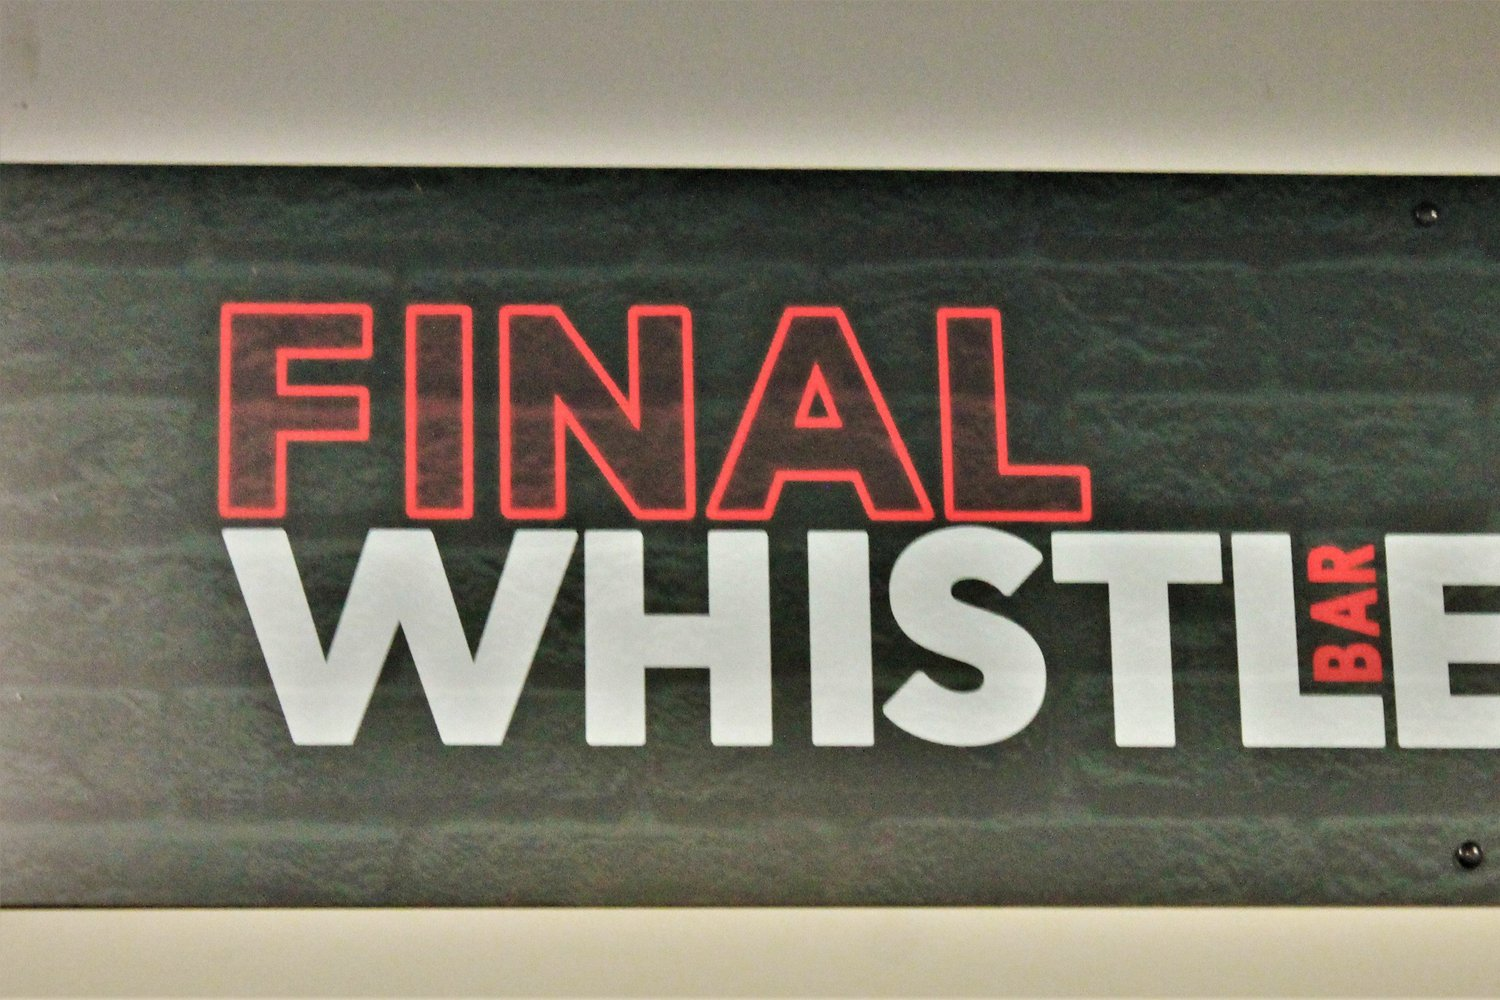 Final whistle1